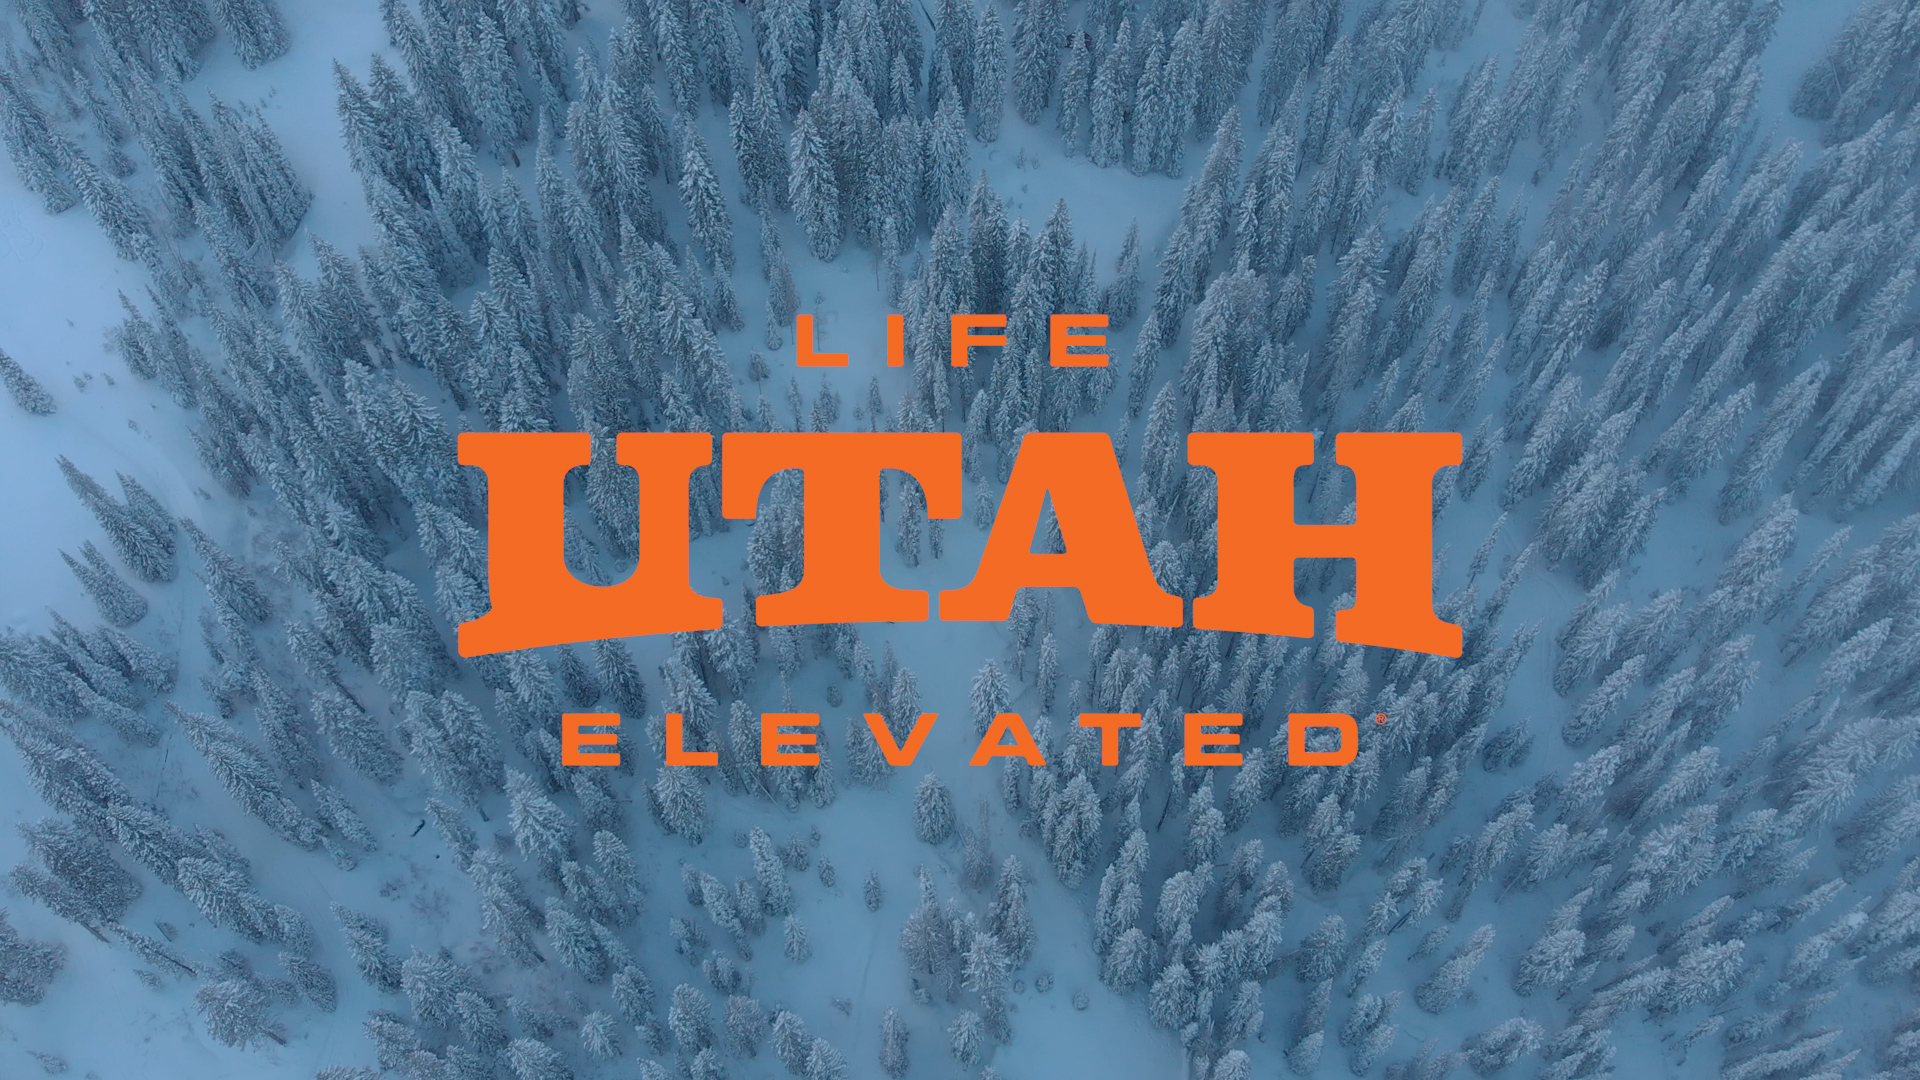 Welcome to Utah video.